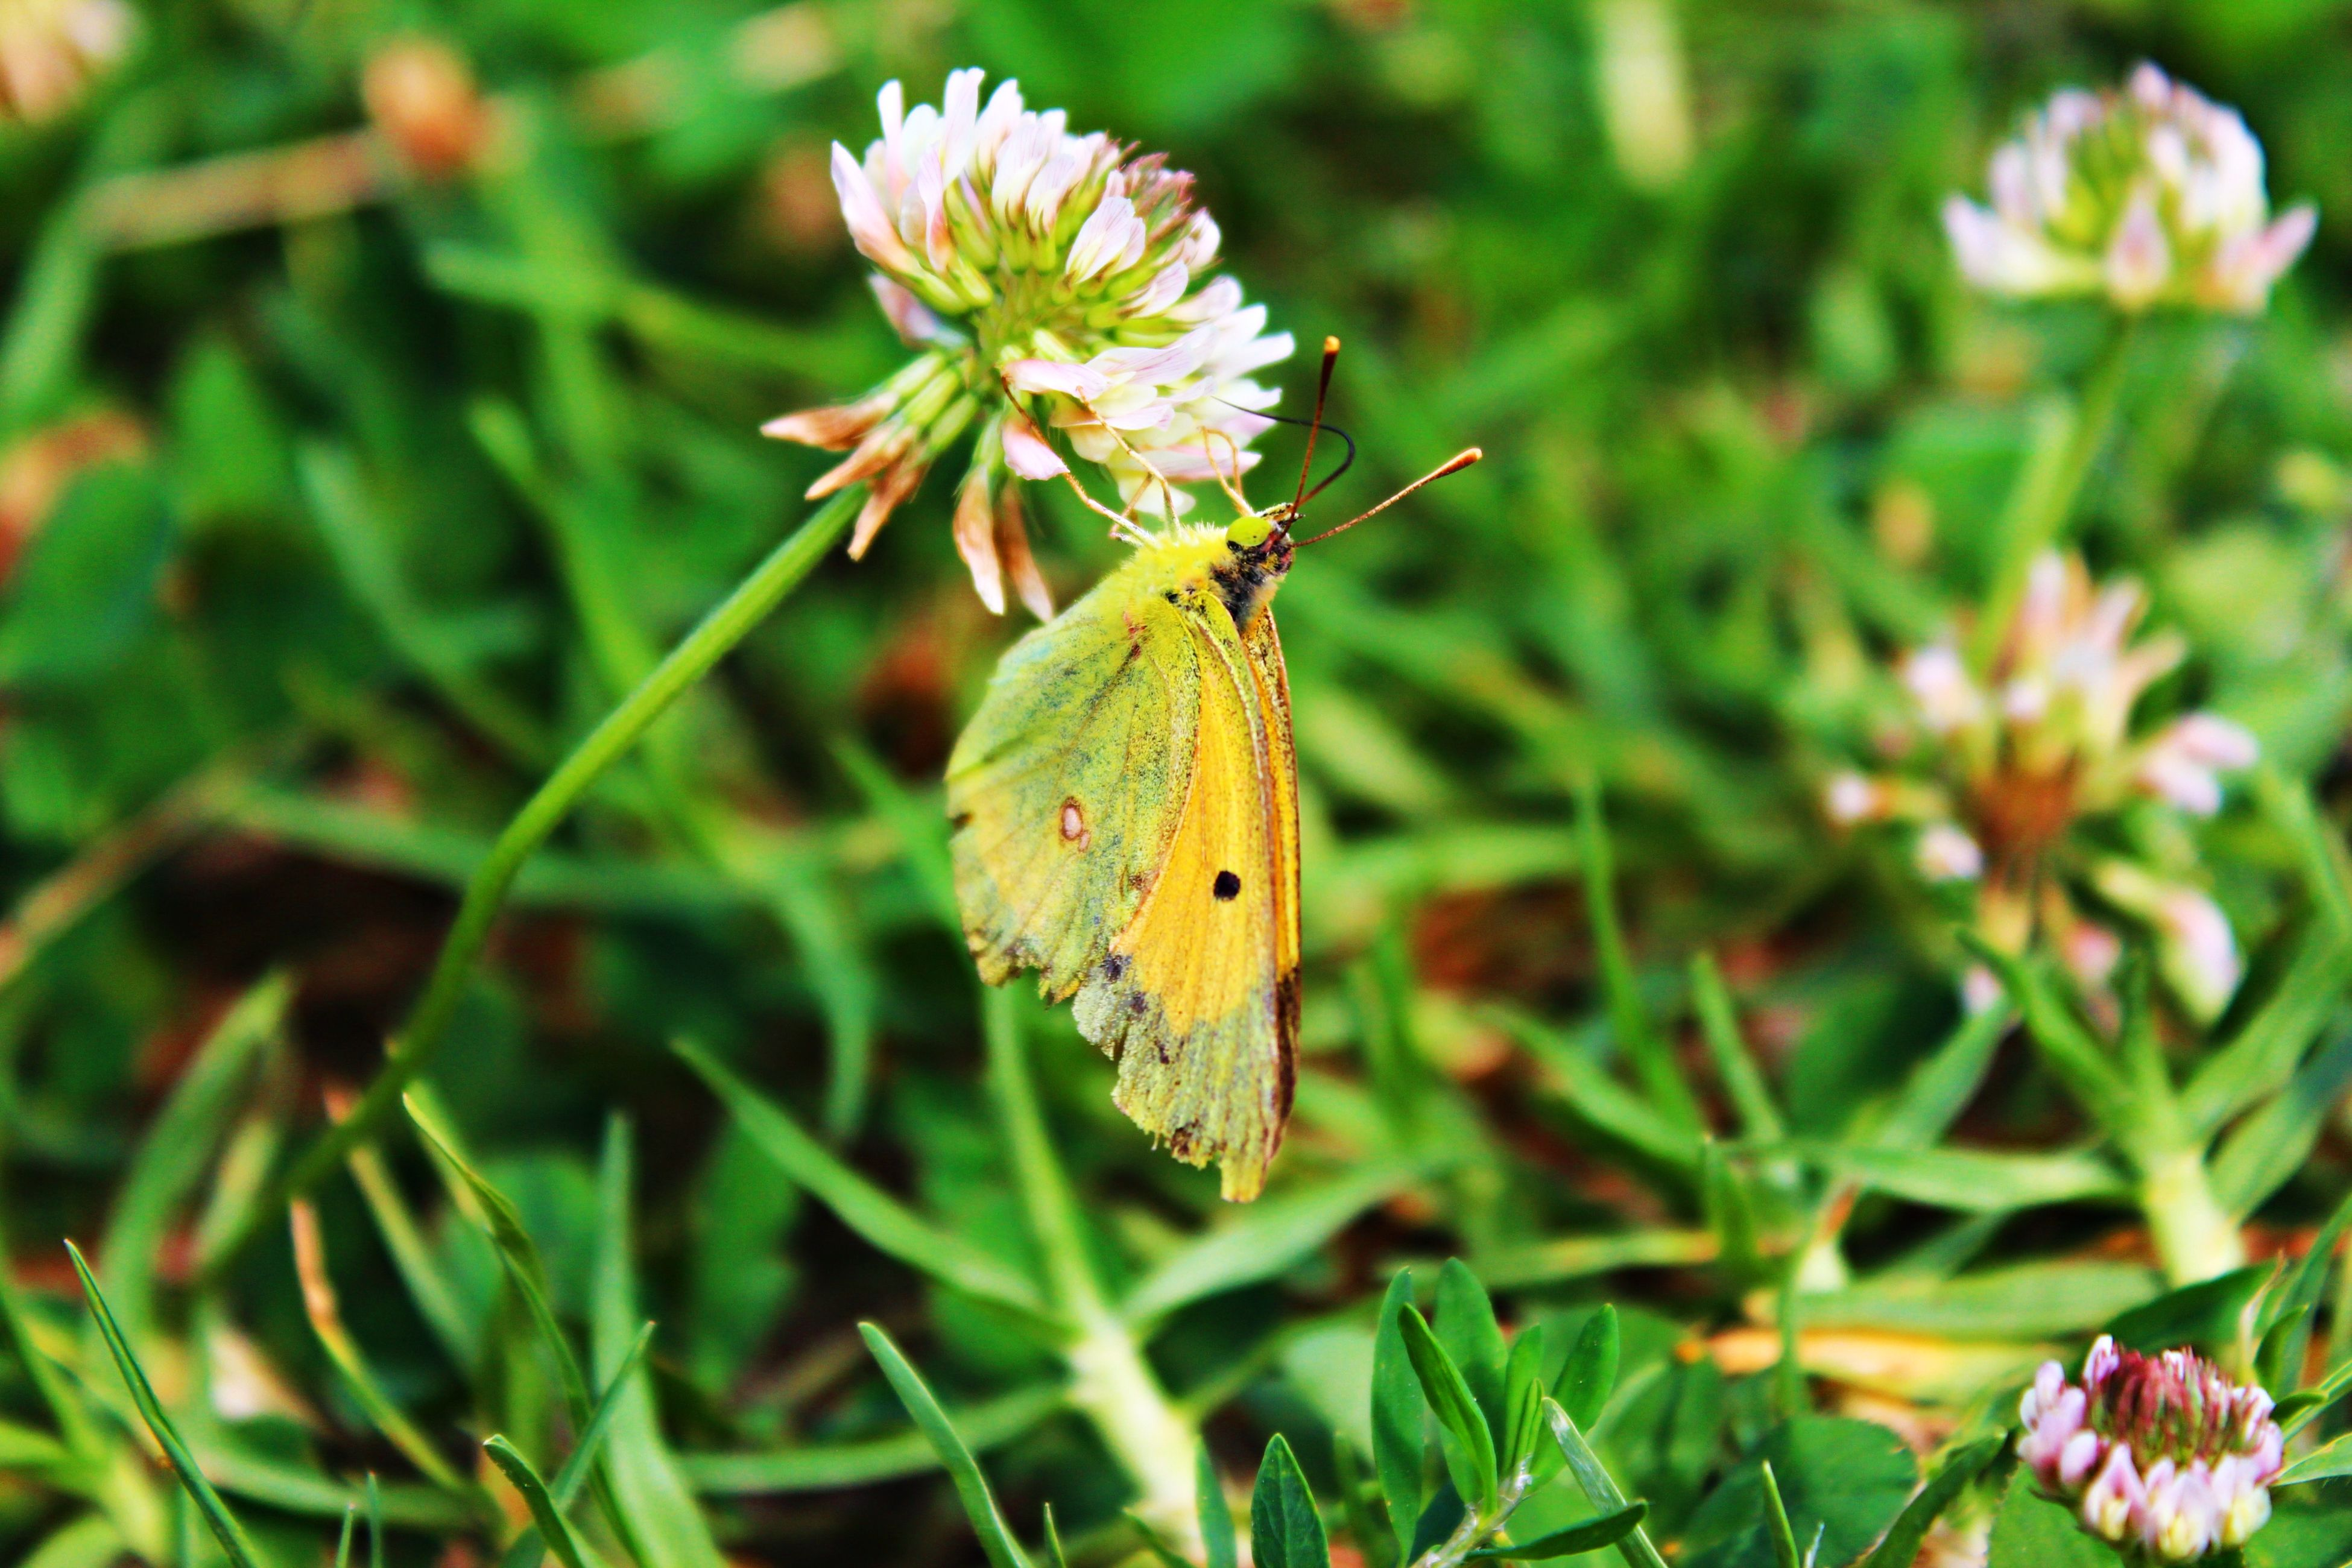 insect, animals in the wild, flower, one animal, wildlife, animal themes, growth, plant, butterfly - insect, focus on foreground, fragility, butterfly, close-up, nature, beauty in nature, freshness, green color, leaf, day, outdoors